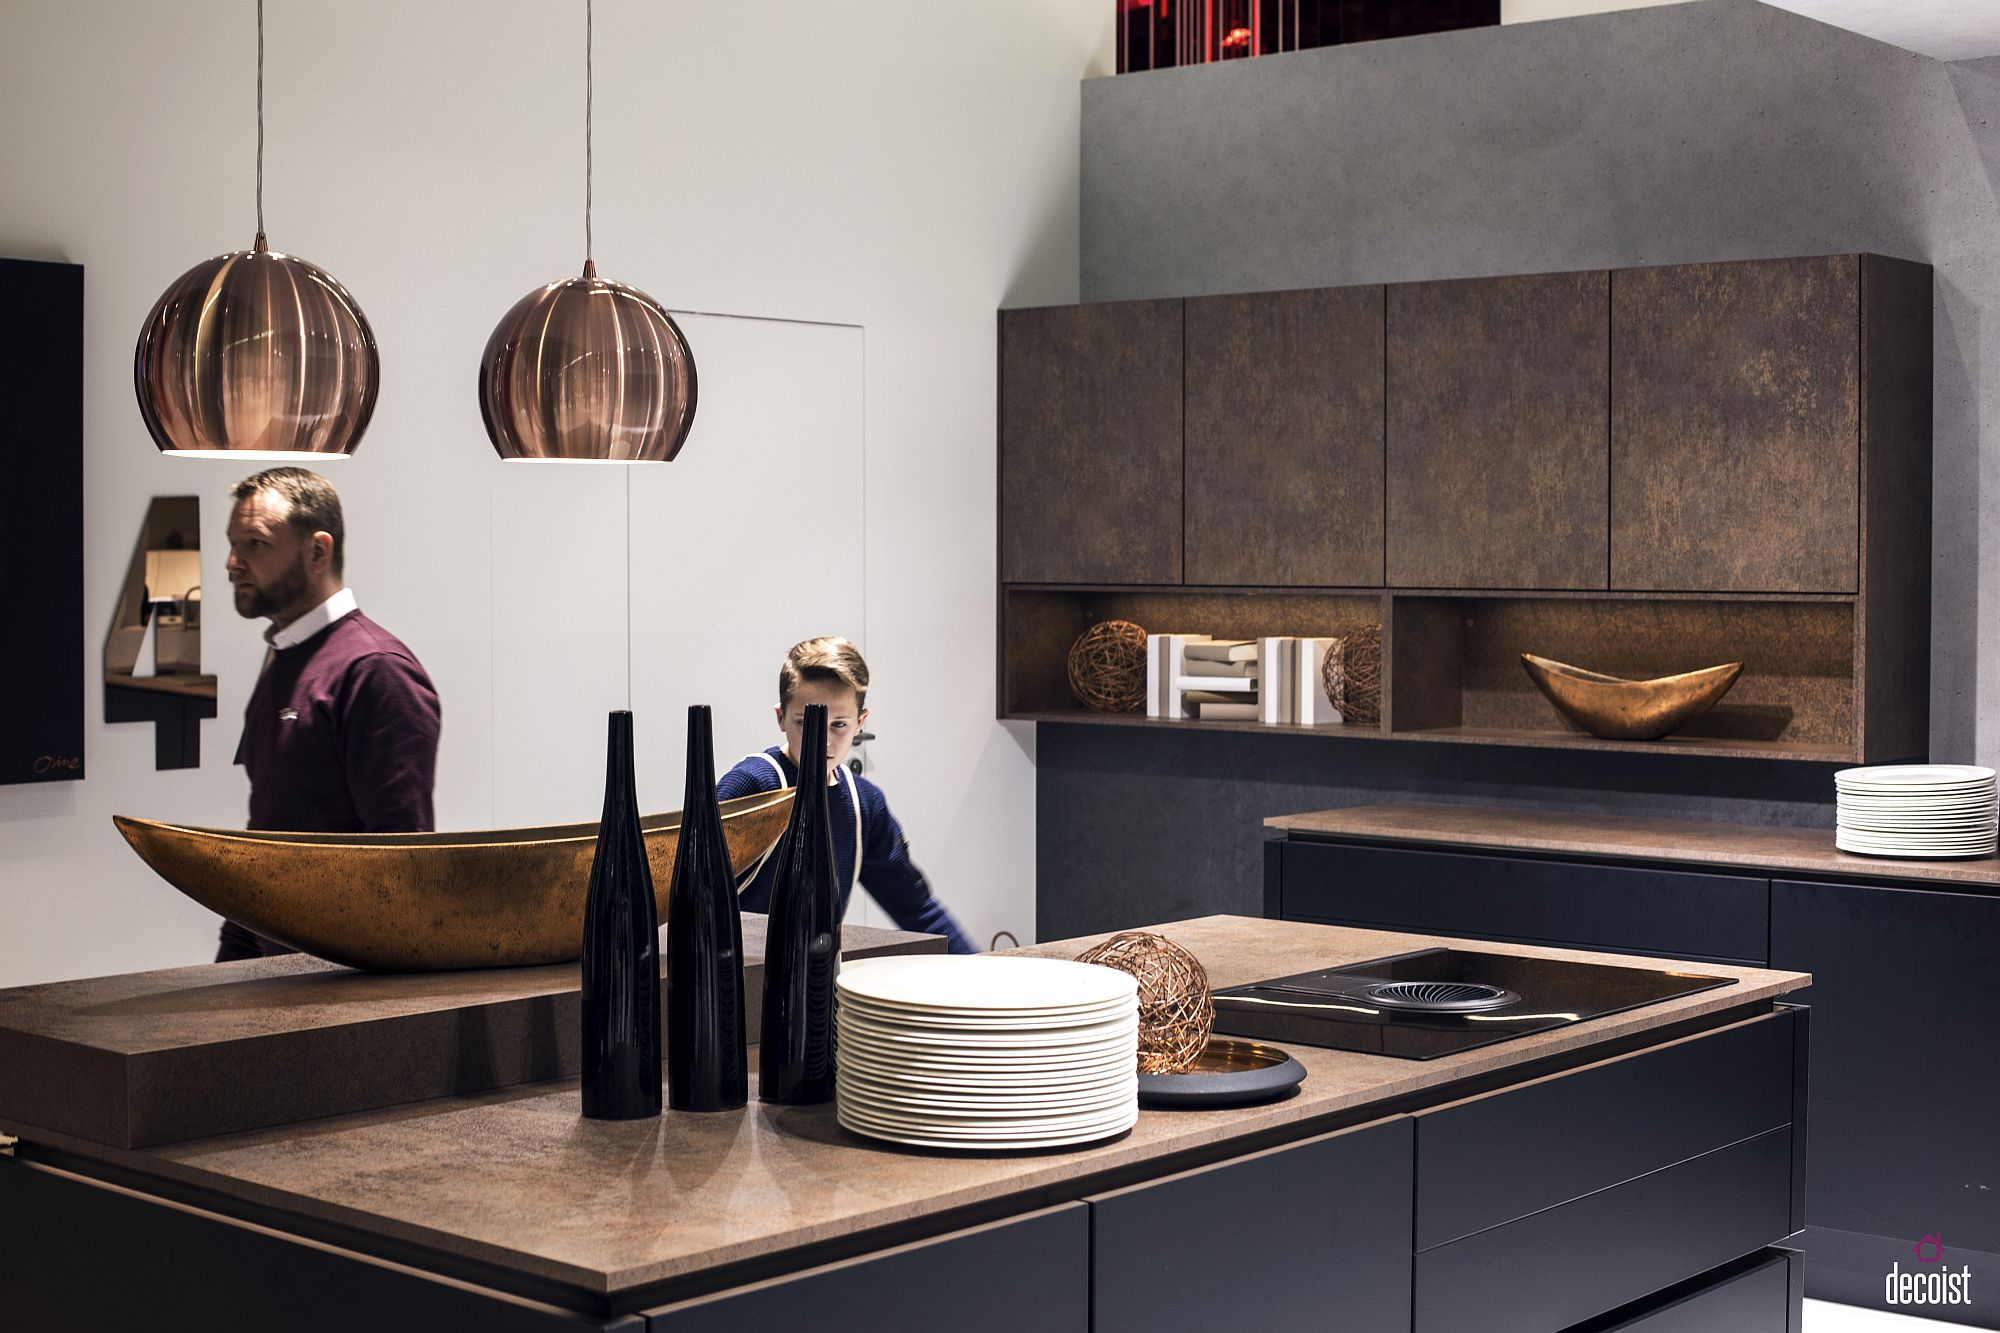 Metallic finishes give the contemporary kitchen textural contrast